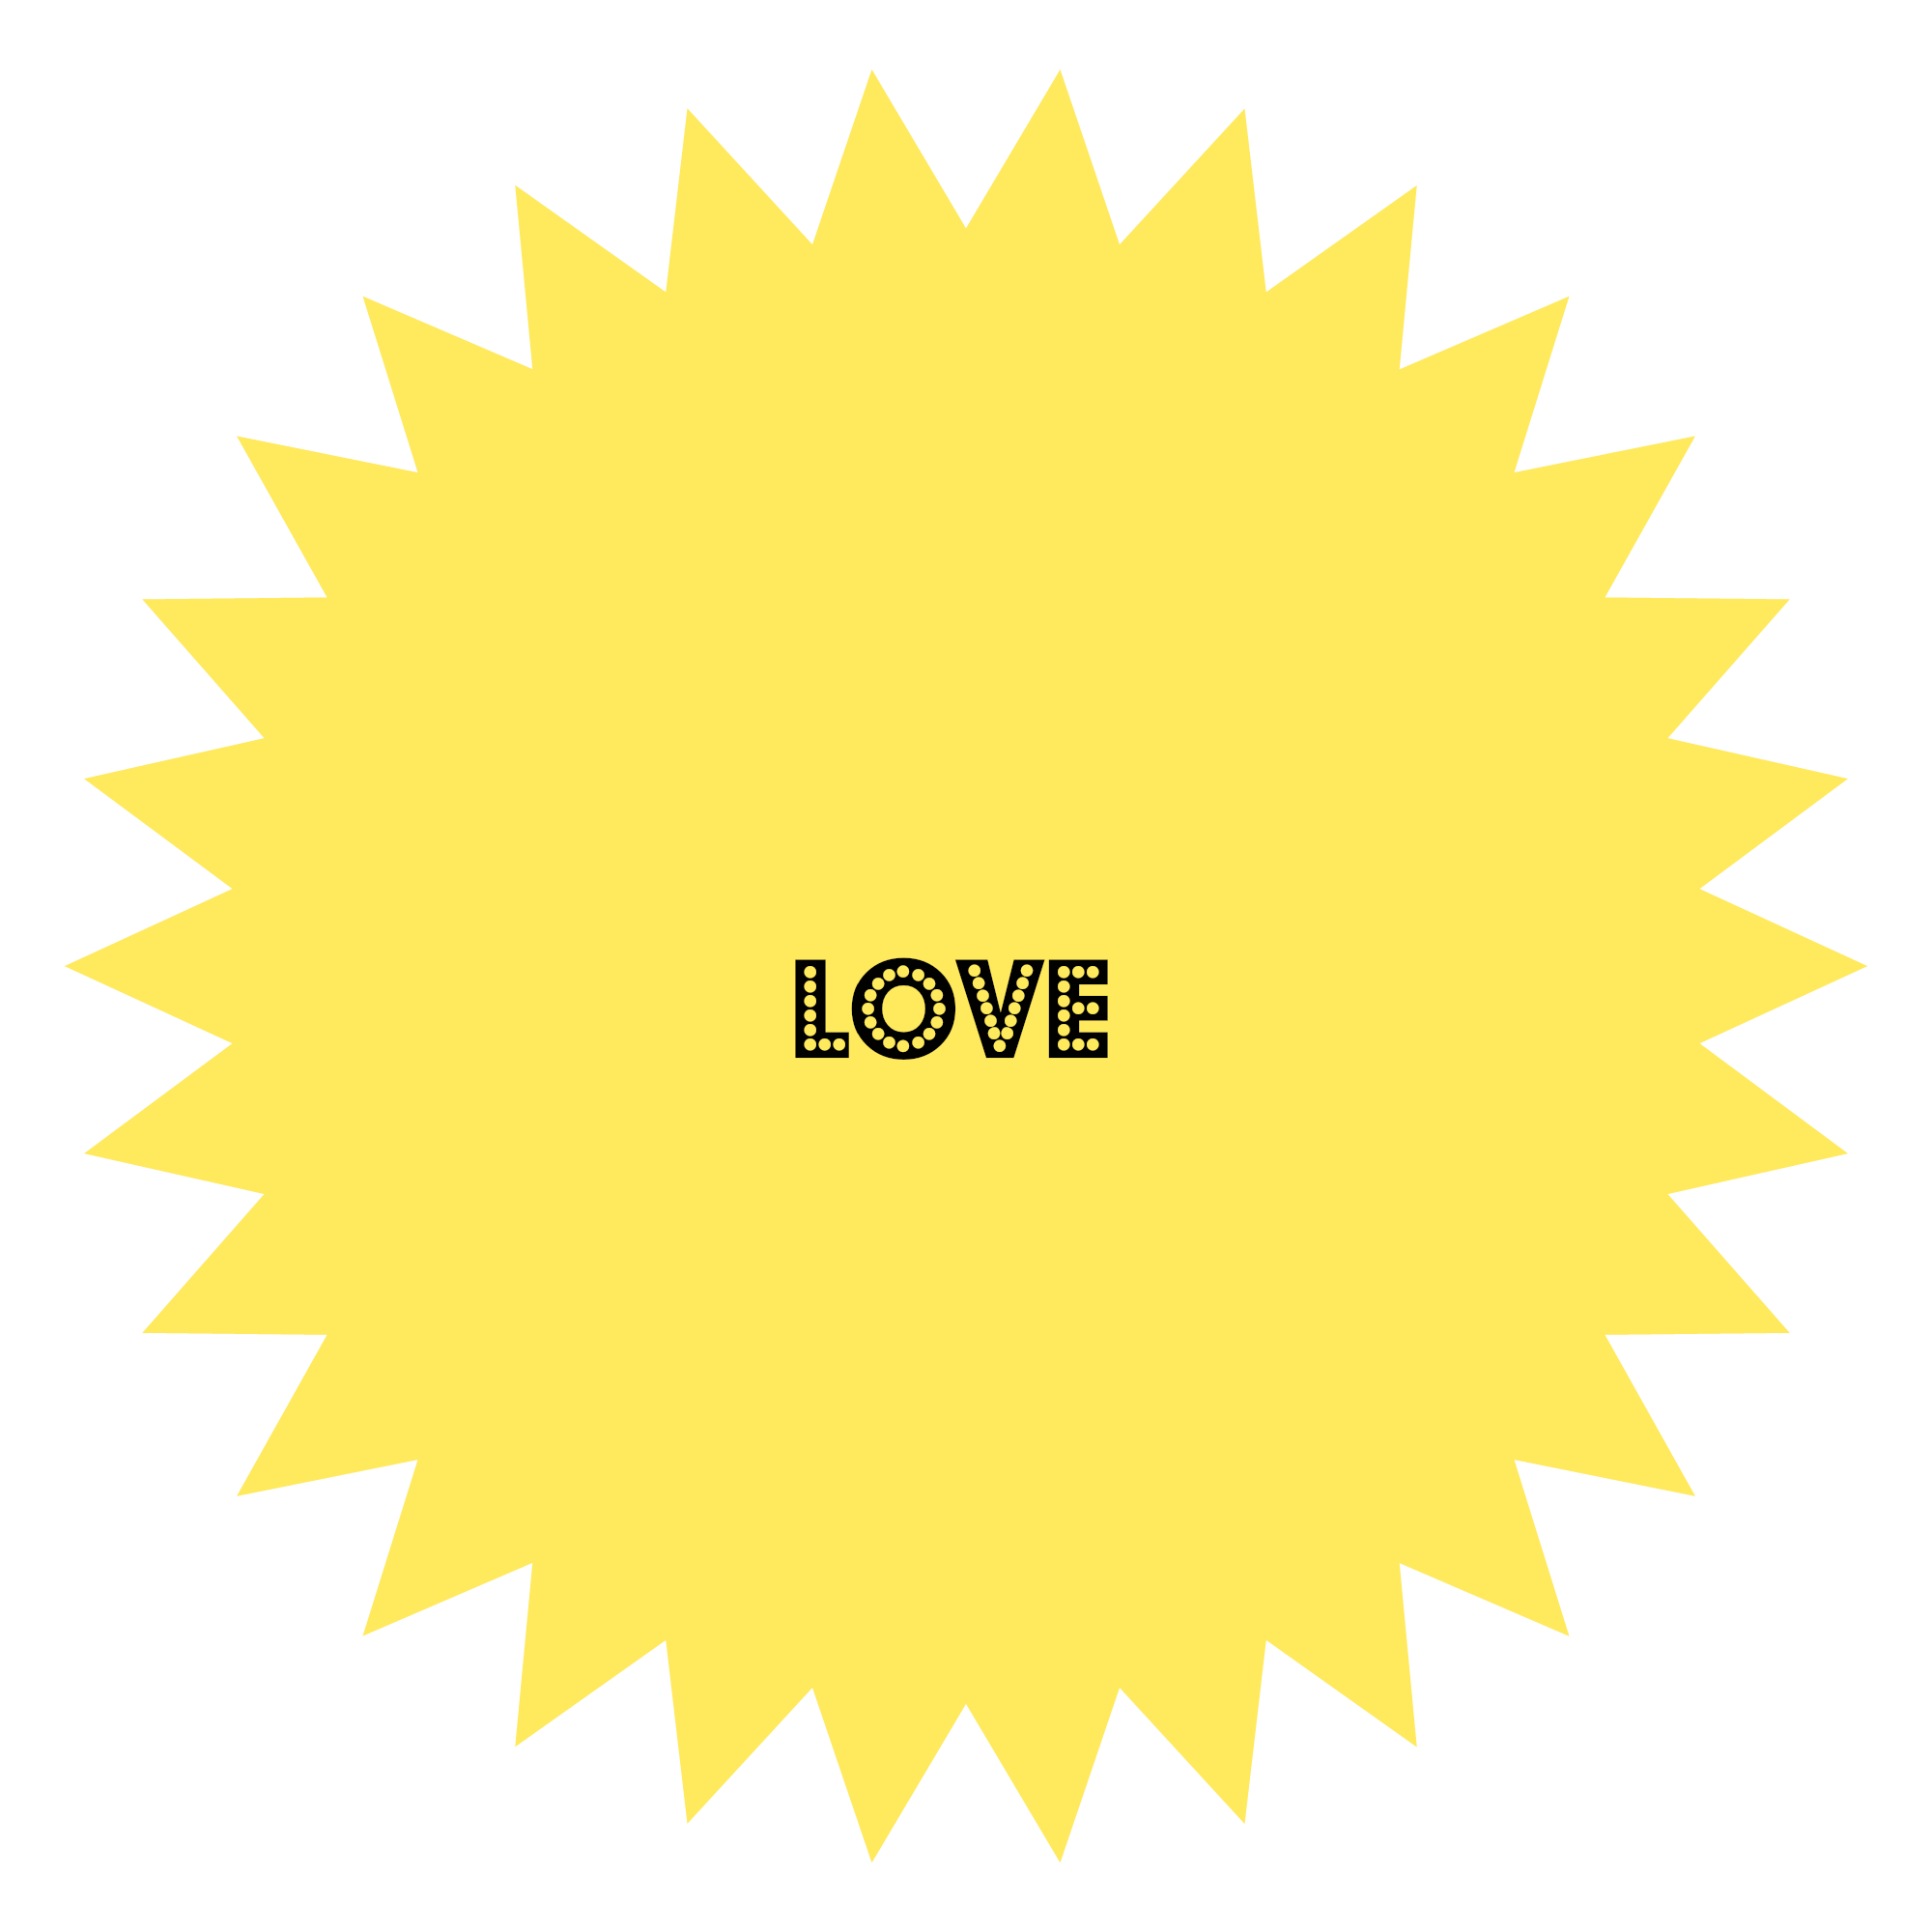 love1.png